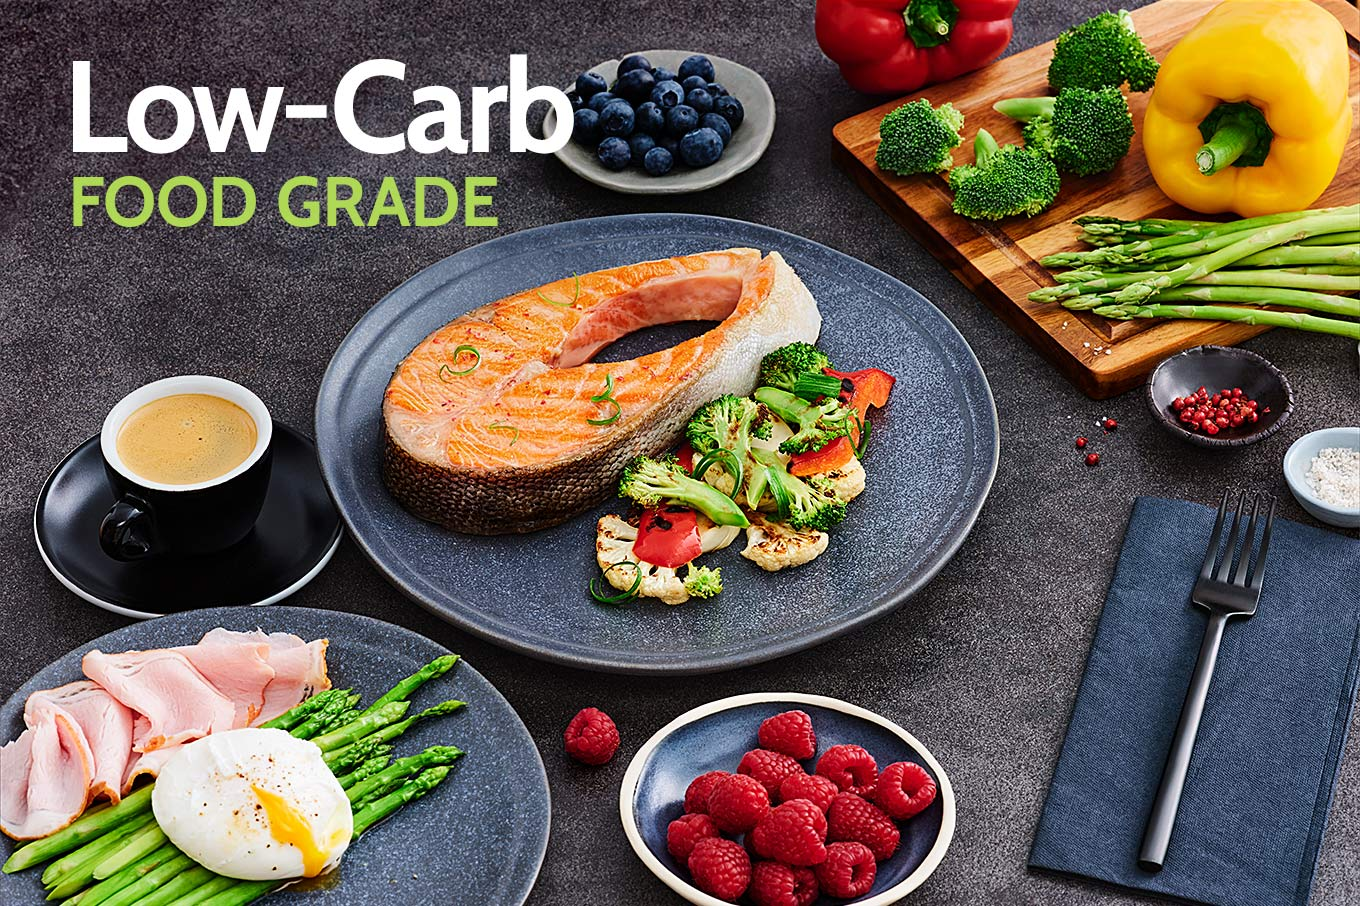 Healthy low-carb foods